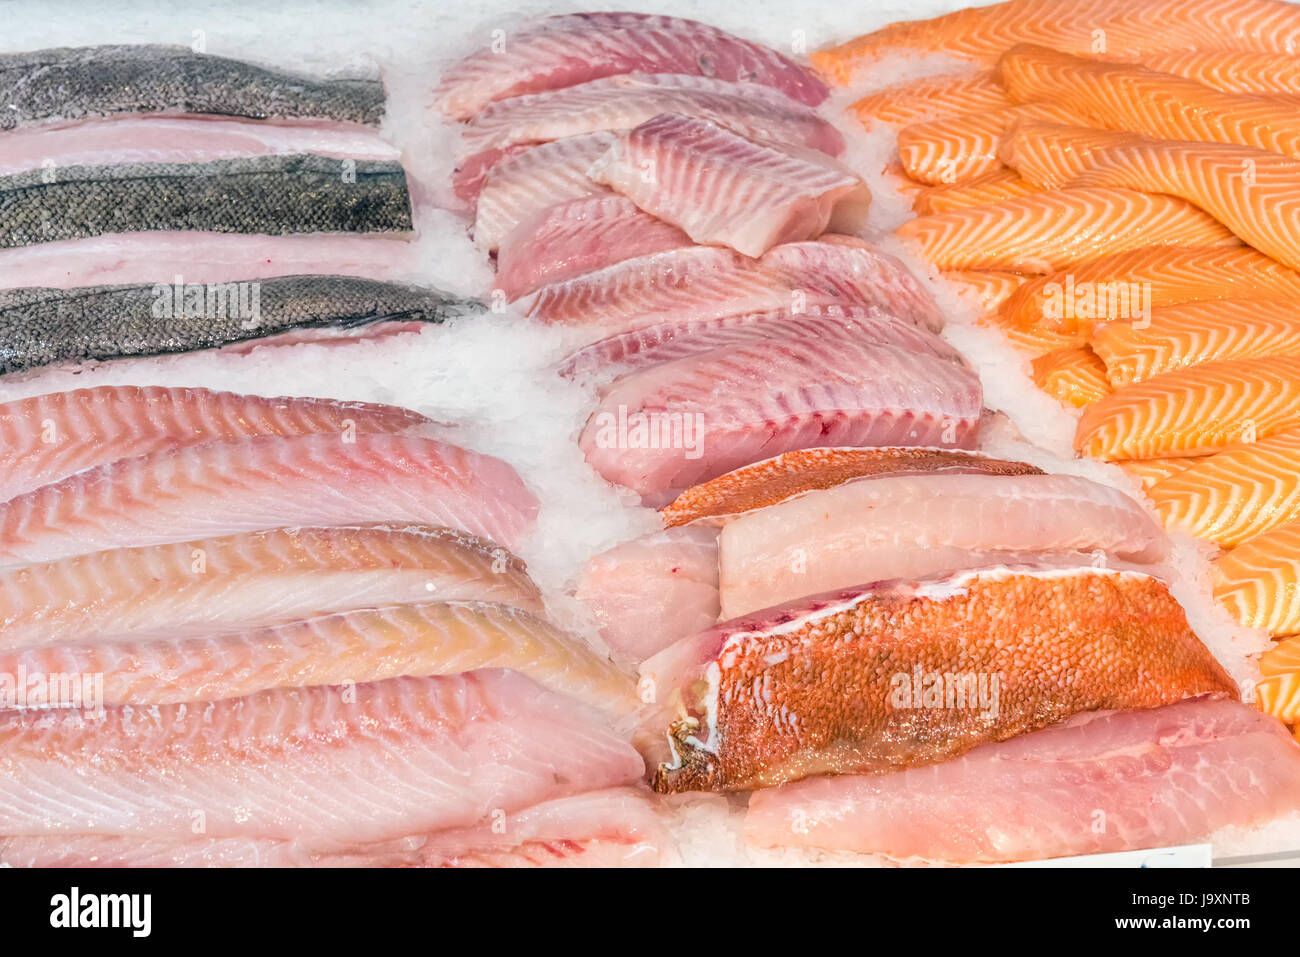 Fish fillets for sale at a market - Stock Image